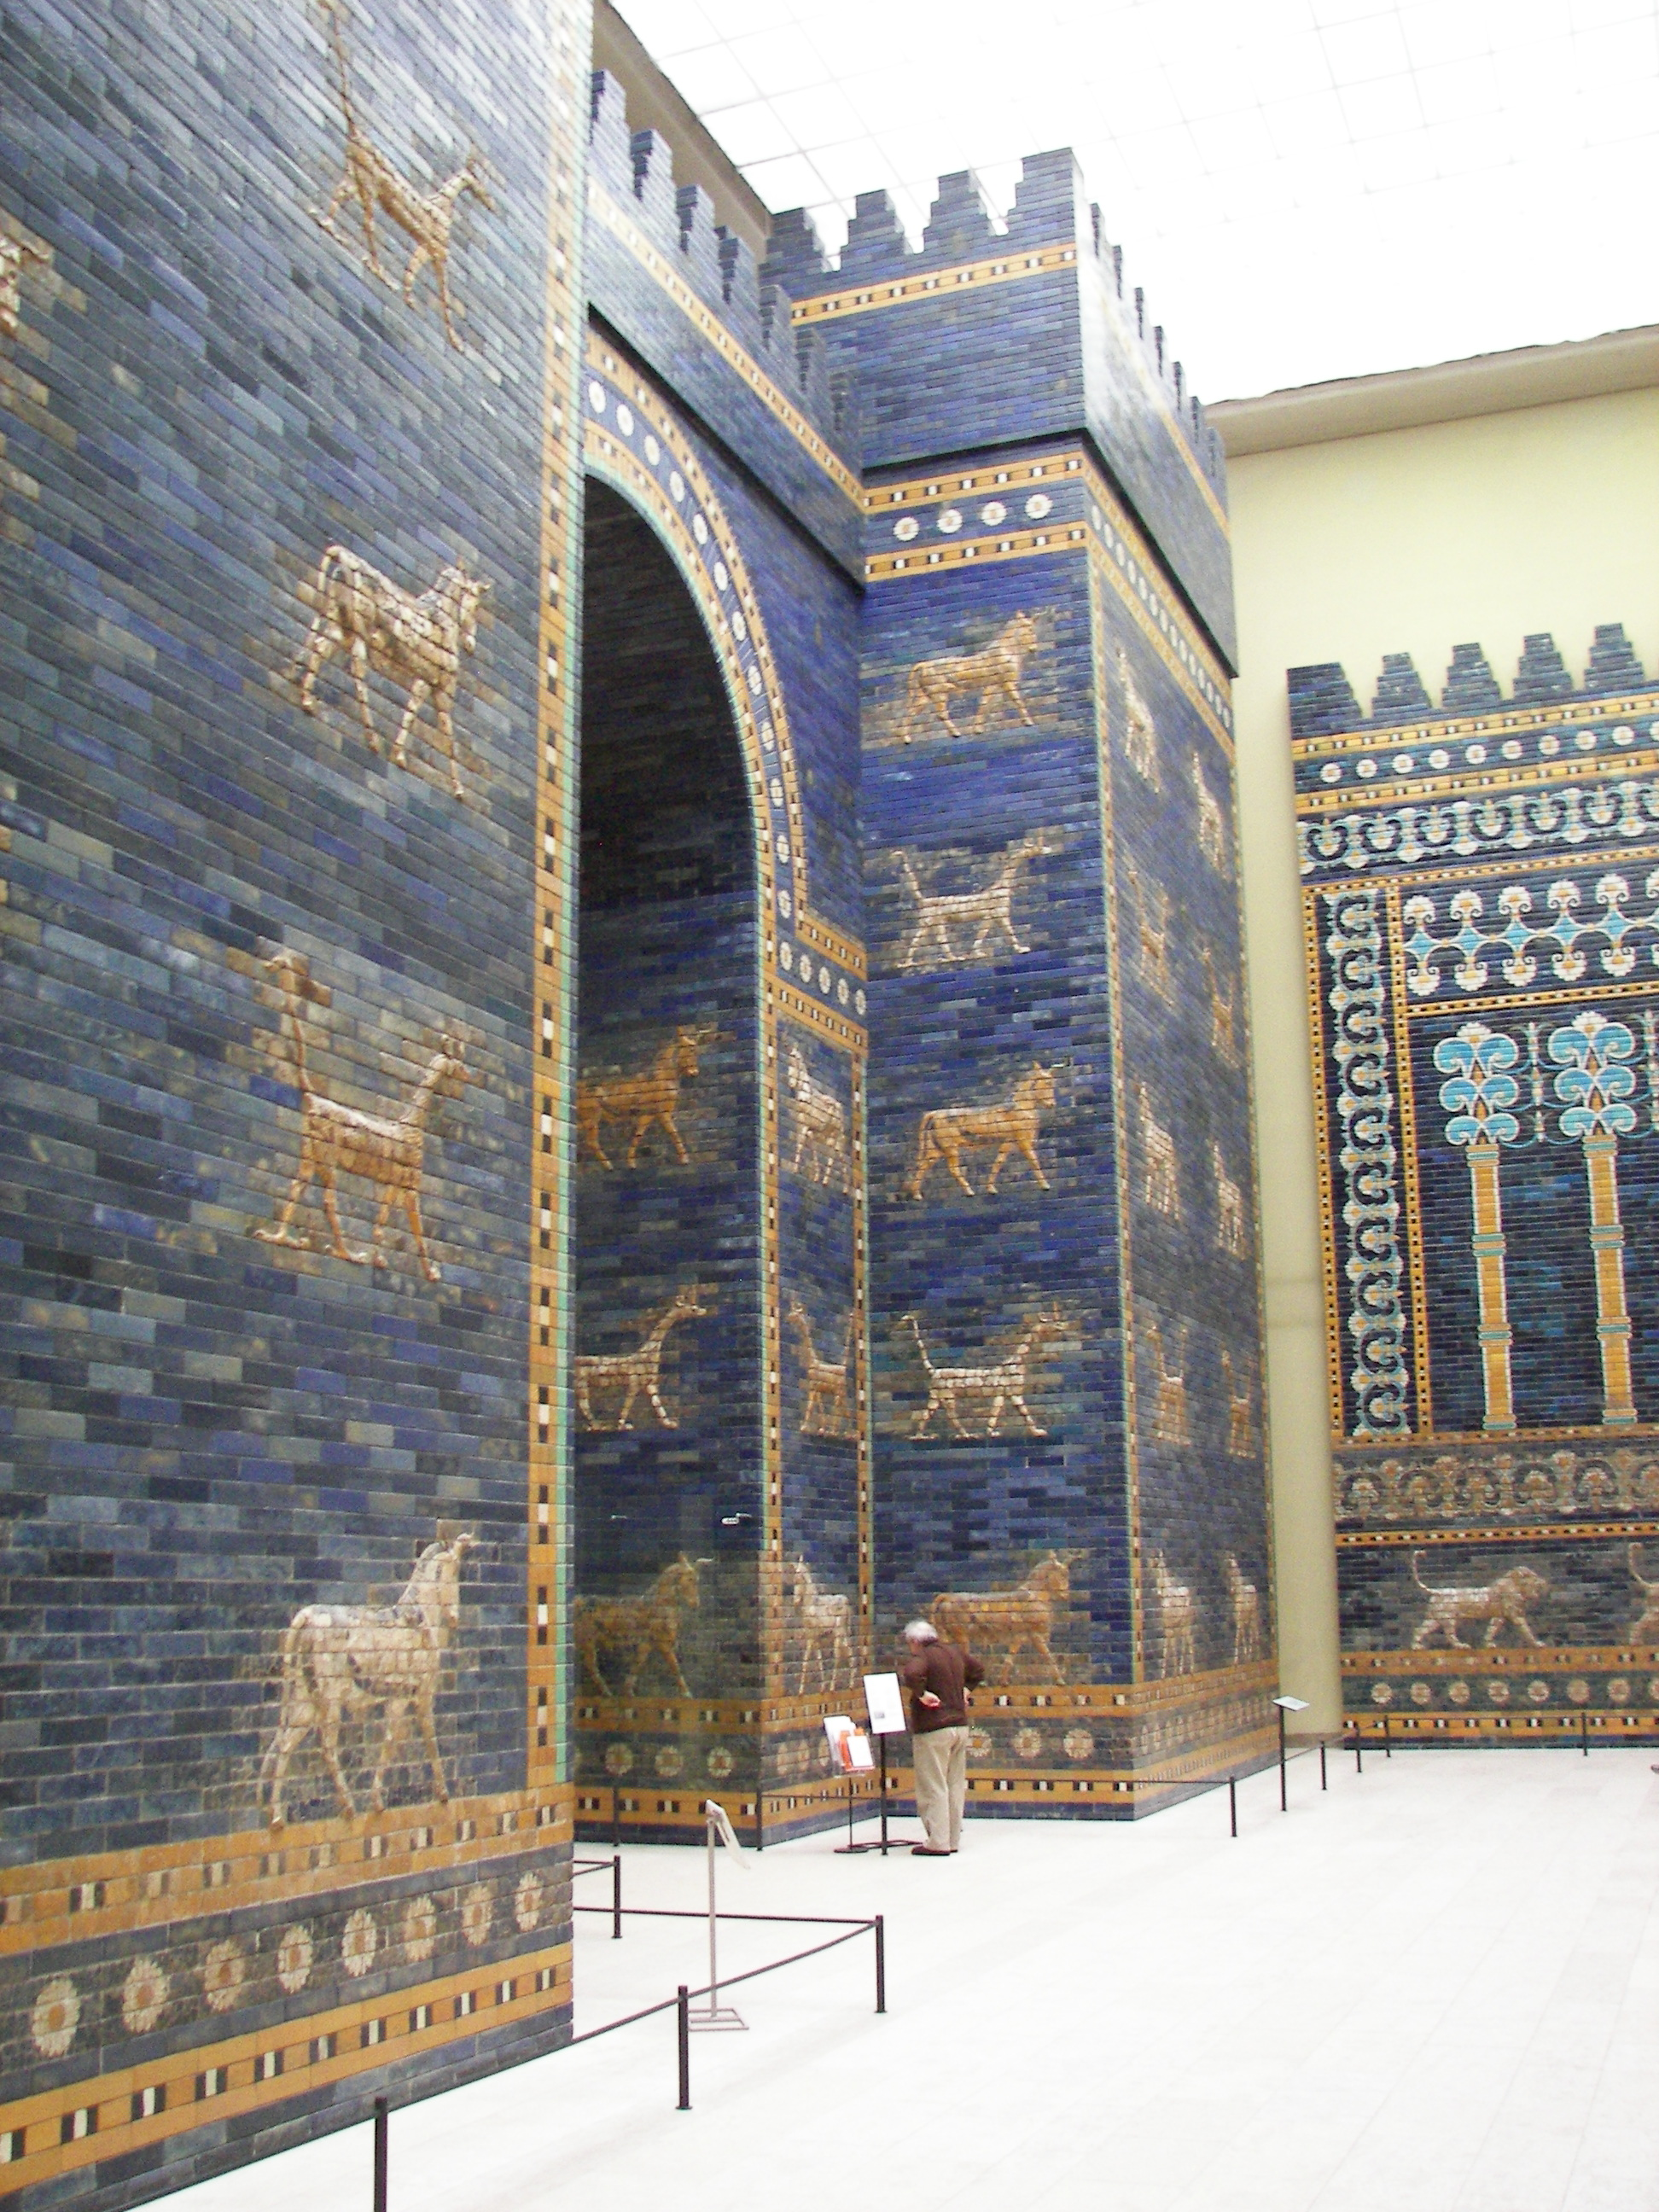 View of the Ishtar gate.